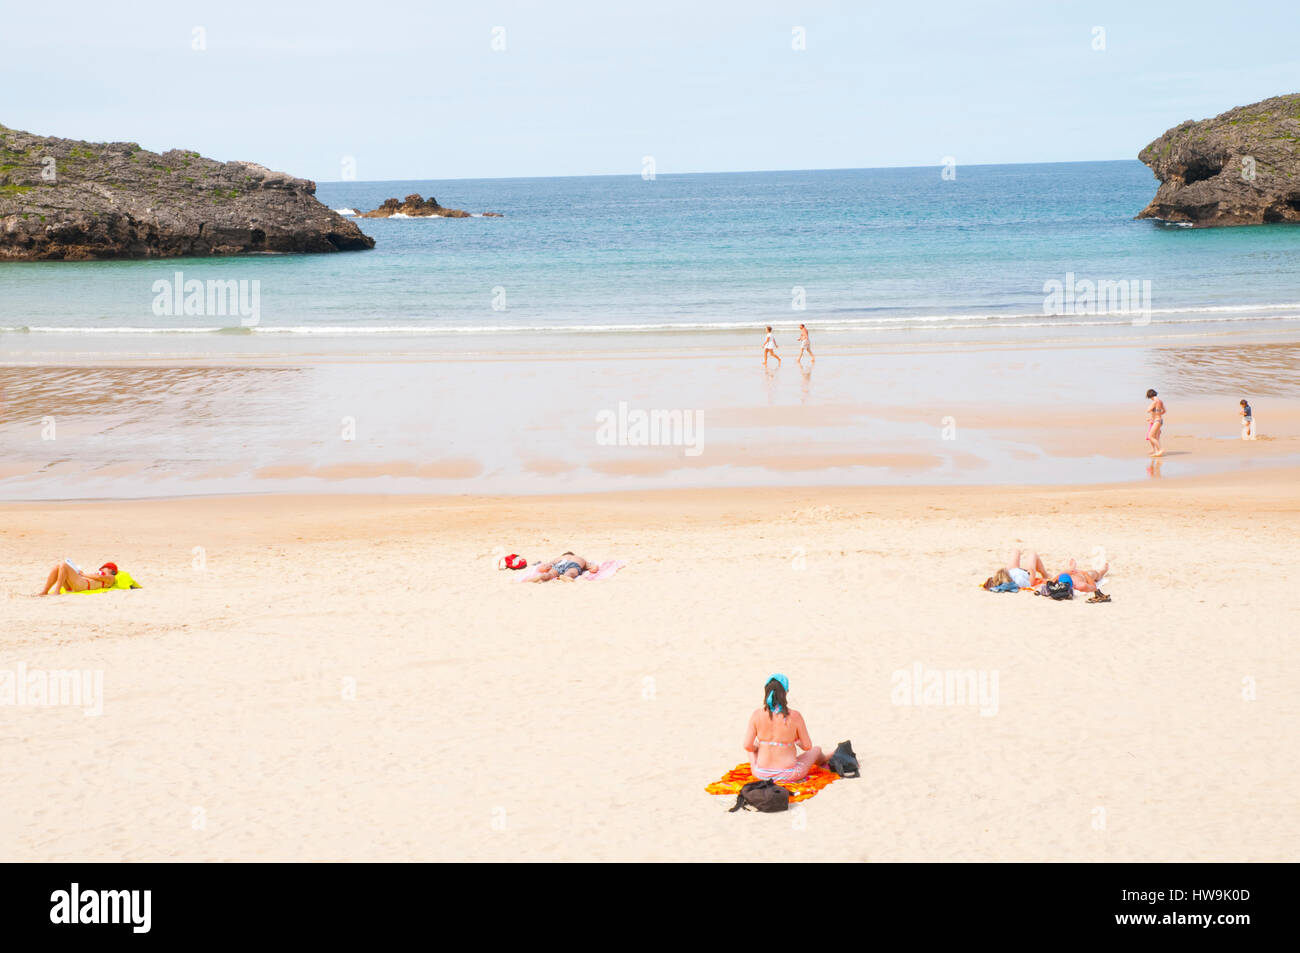 Beach. Barro, Asturias, Spain. - Stock Image